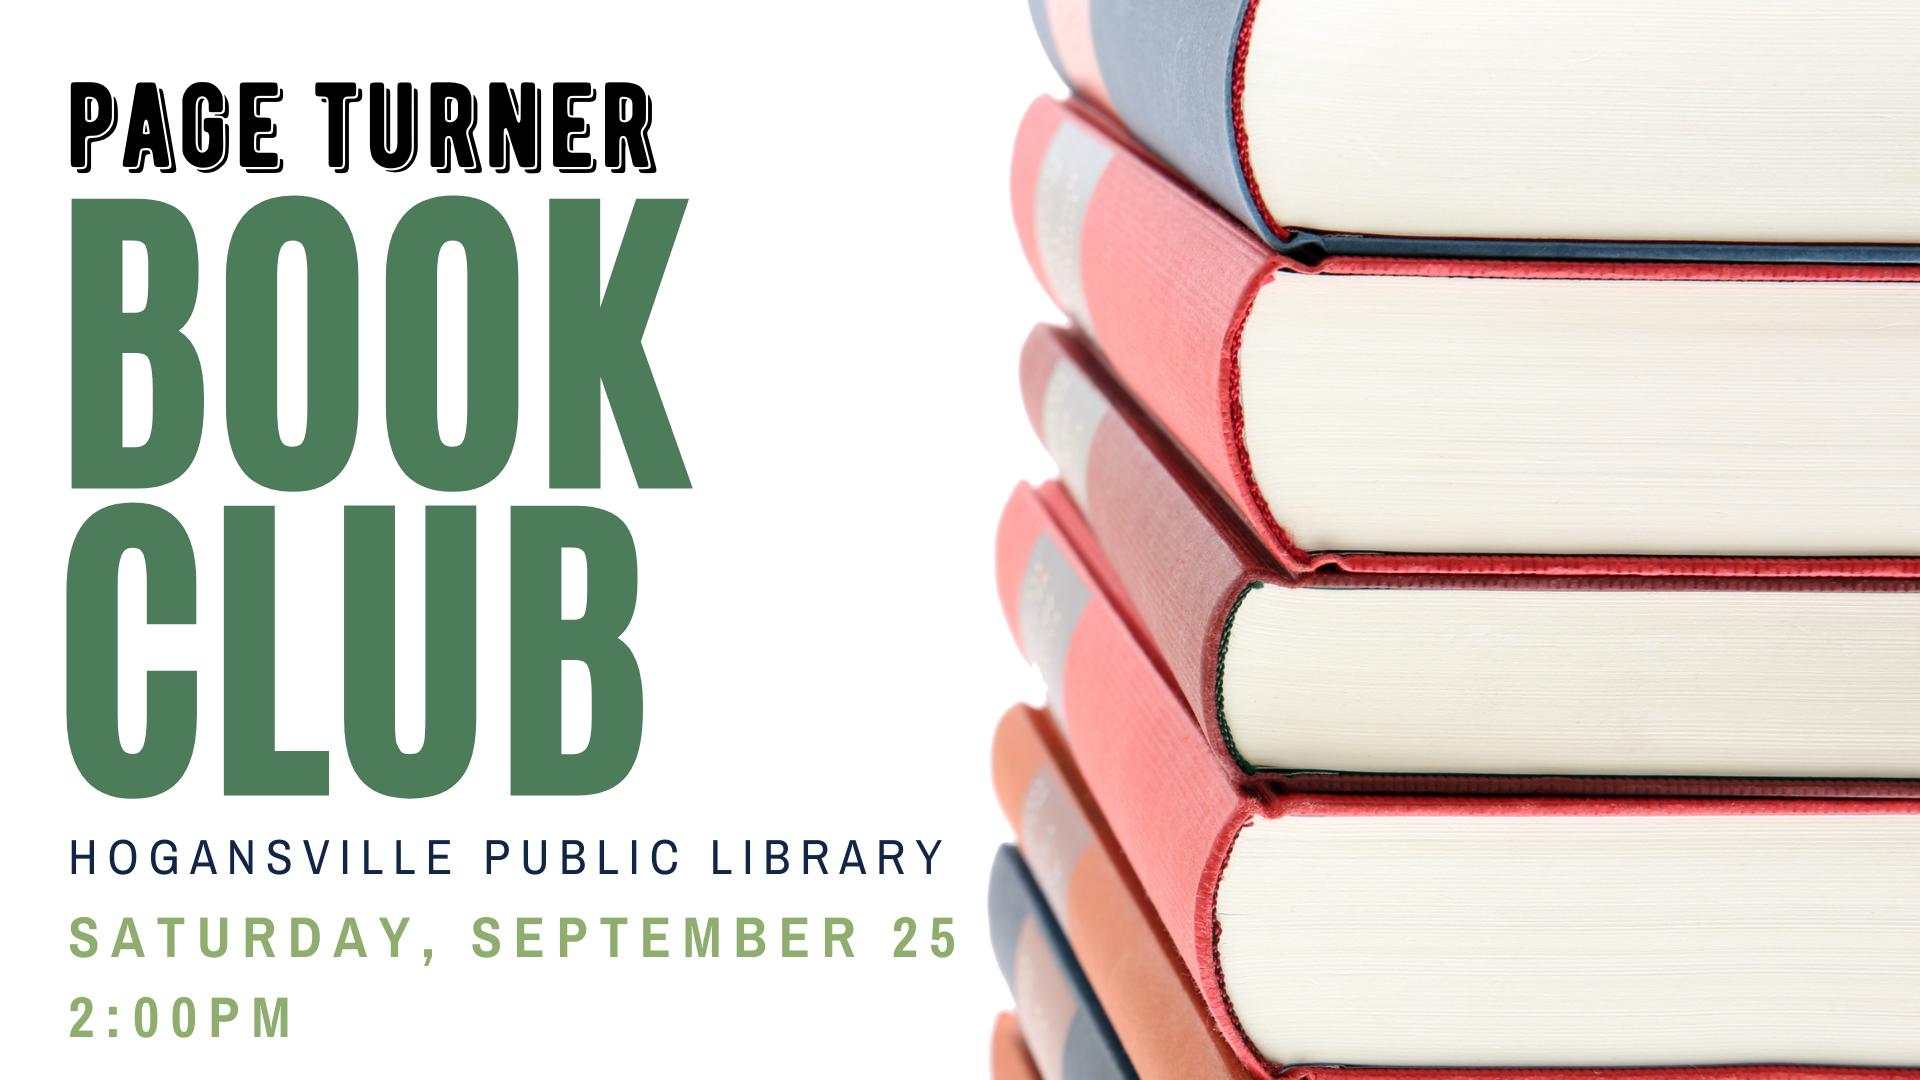 What have you been reading lately? Drop by the Hogansville Library on September 25 at 2 PM to share your latest reads. Open to all adults, no library card/registration required. Light refreshments provided.